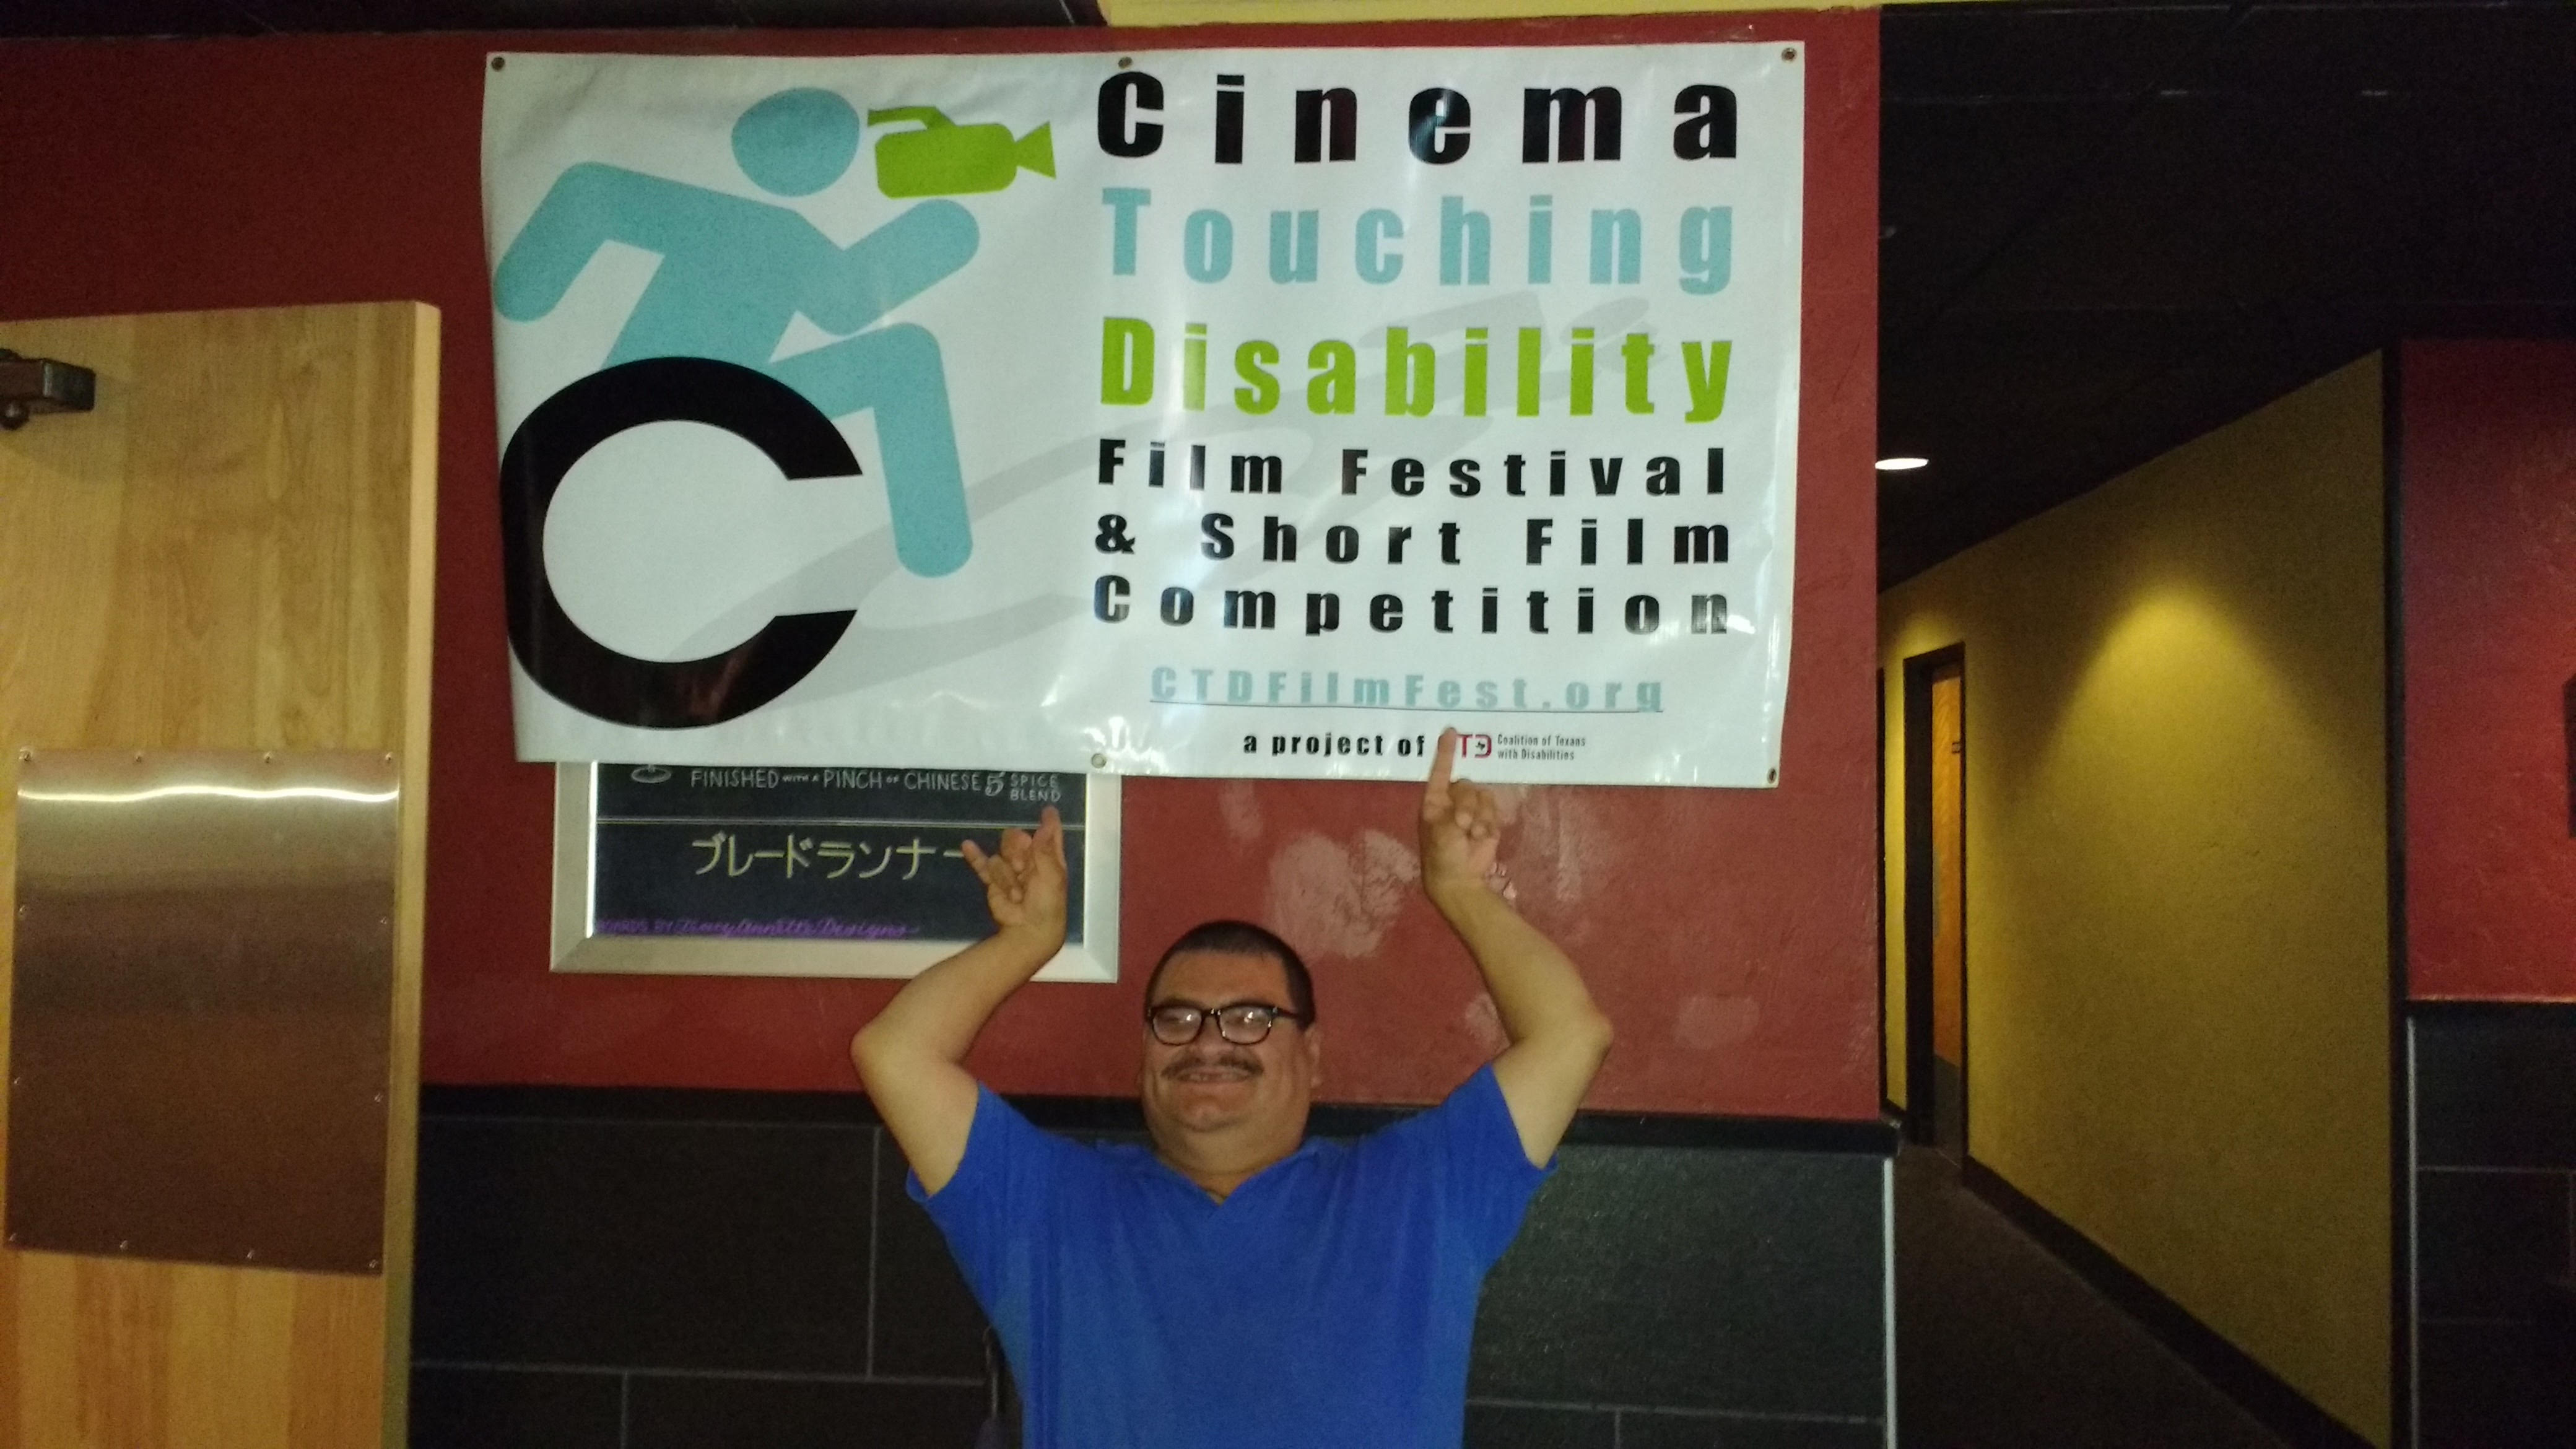 A man in a blue shirt is seated below a Cinema Touching Disability vinyl banner. He smiles broadly and raises both arms overhead to point at the banner.